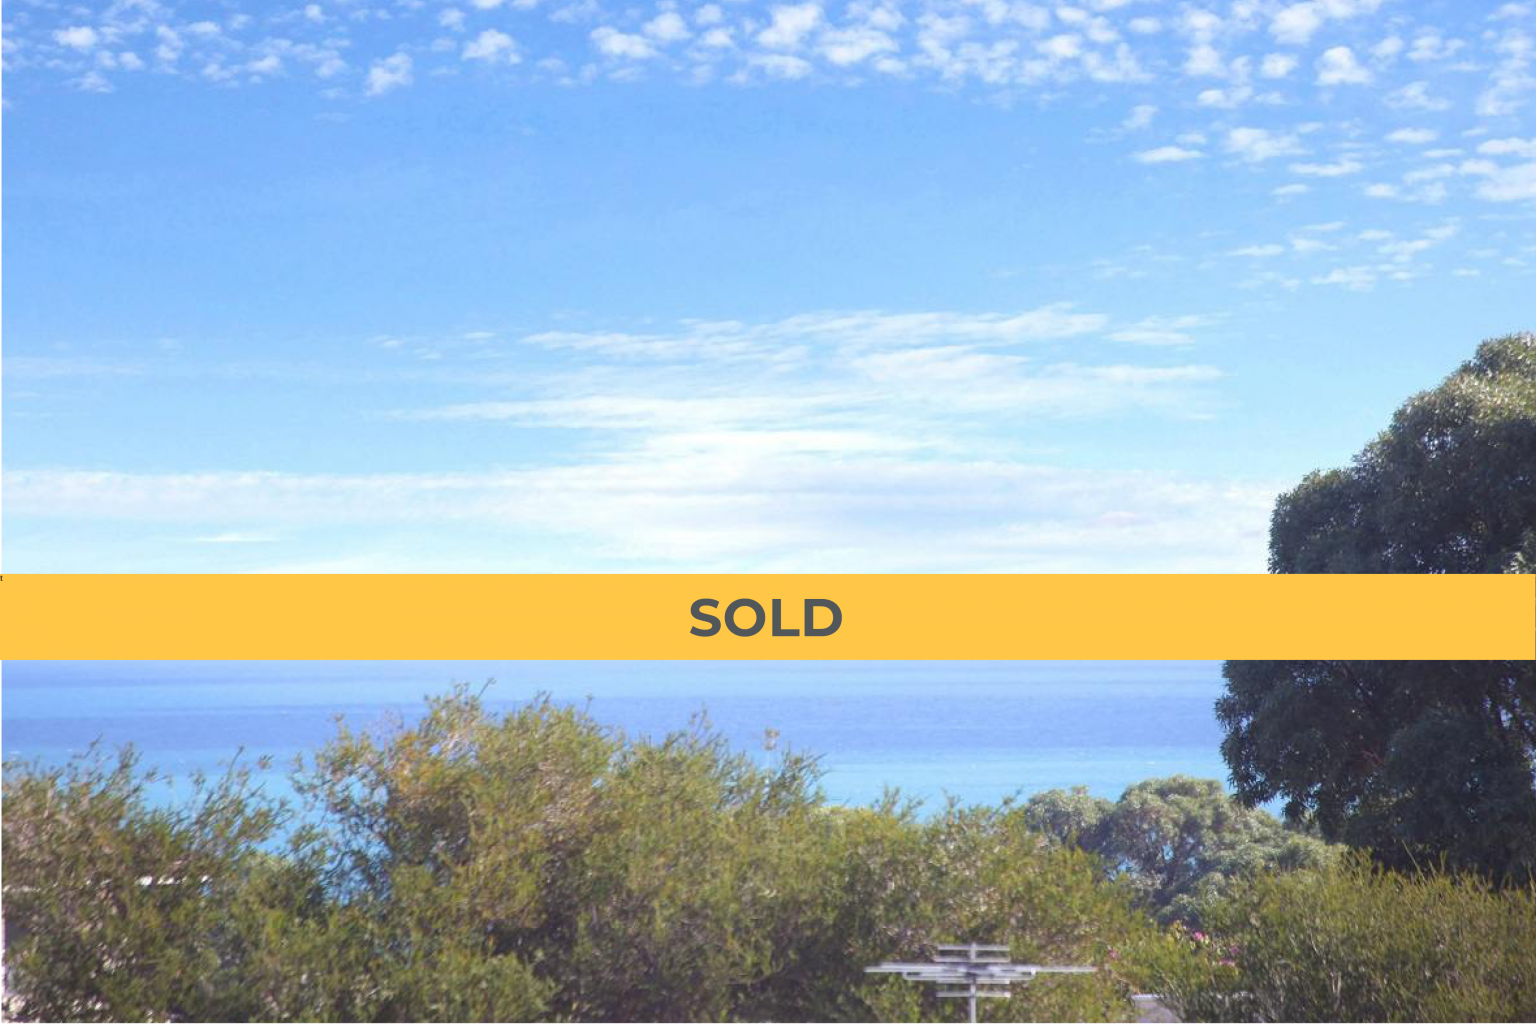 Villa 36 Sold | Independent Living Facility Perth | Ocean Gardens